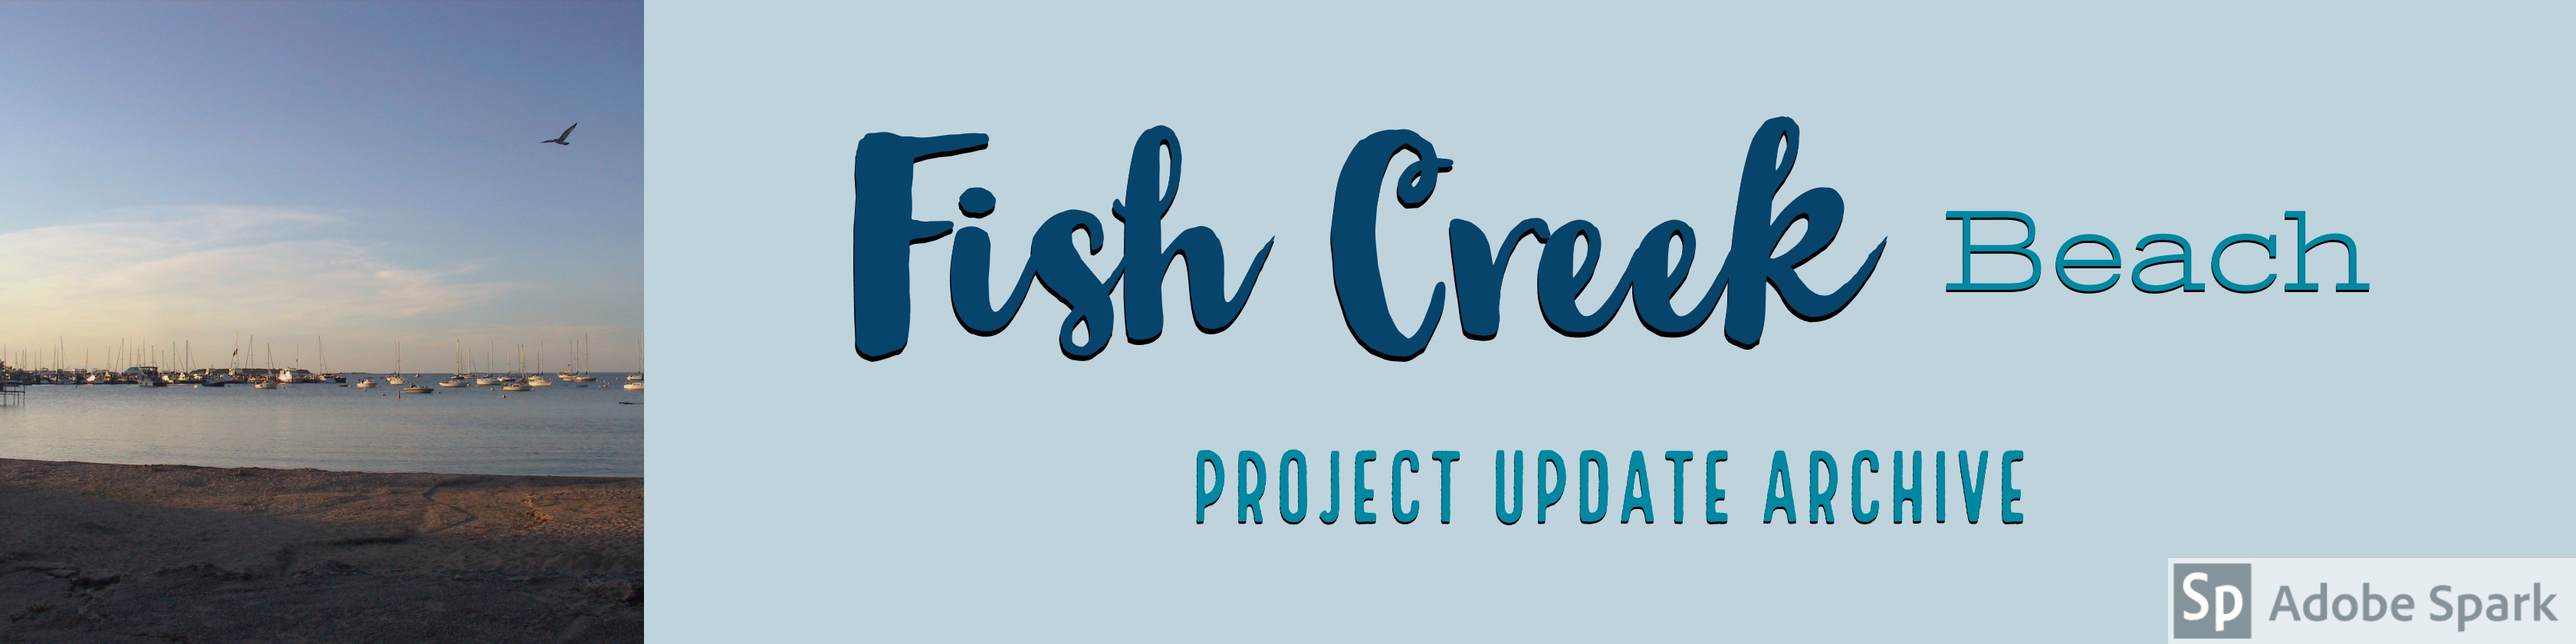 Fish Creek Beach Archive Banner